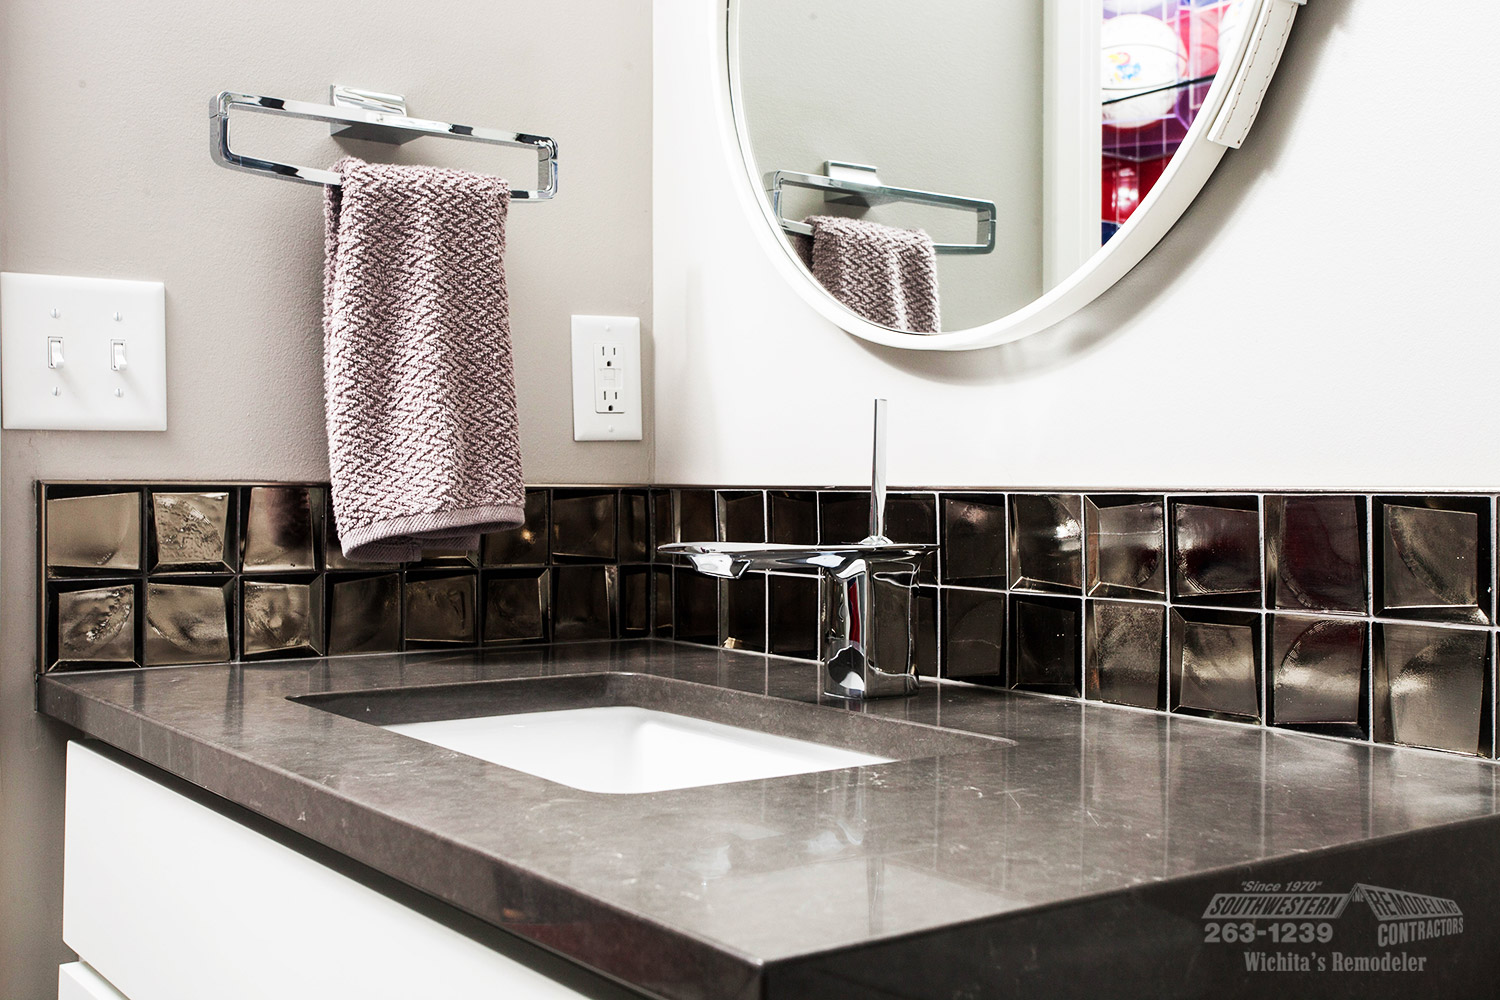 Bathroom Remodeling Wichita Ks Prepossessing Bathroom Remodeling  Southwestern Remodeling  Wichita Decorating Design